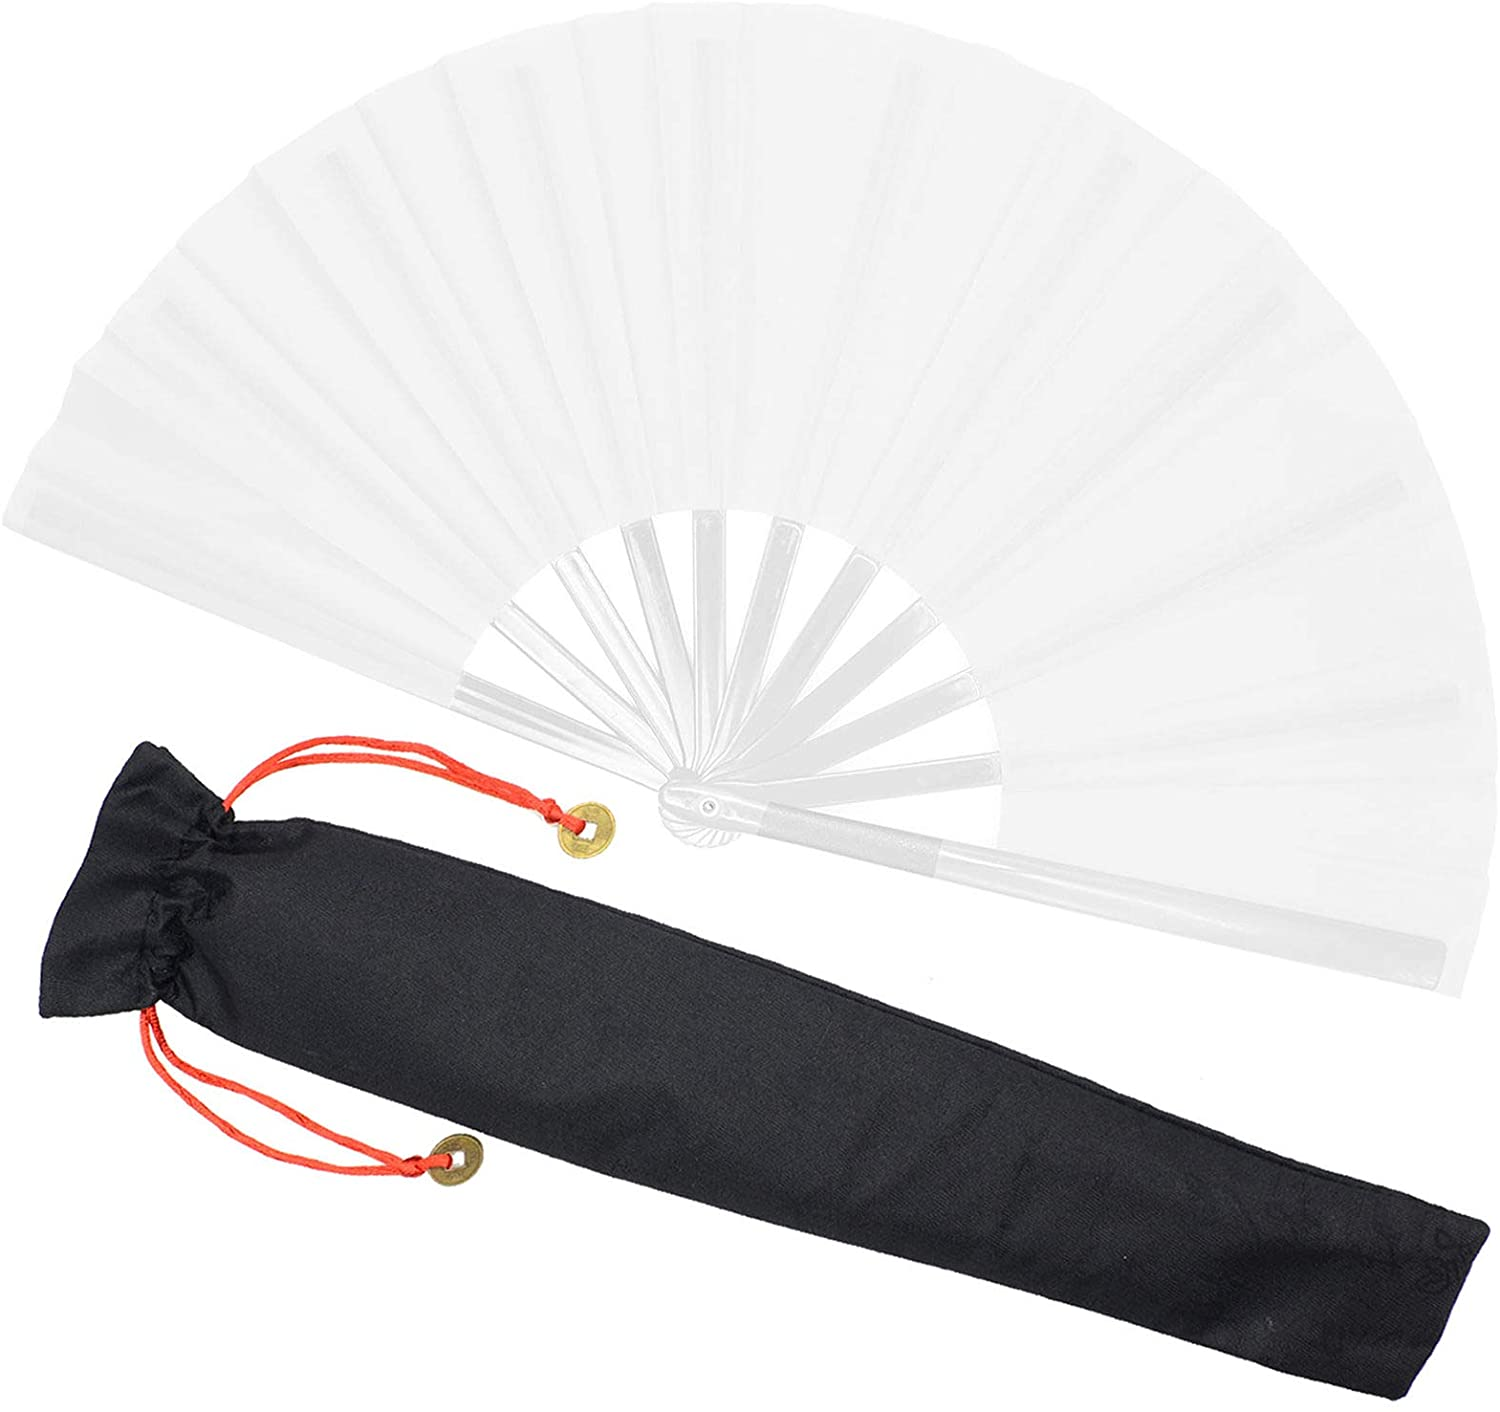 Zolee Large Rave Folding Hand Fan for Men/Women - Chinese Japanese Solid Kung Fu Tai Chi Handheld Fan with Fabric Case - for EDM, Music Festival, Club, Event, Party, Dance, Performance, Gift (White)